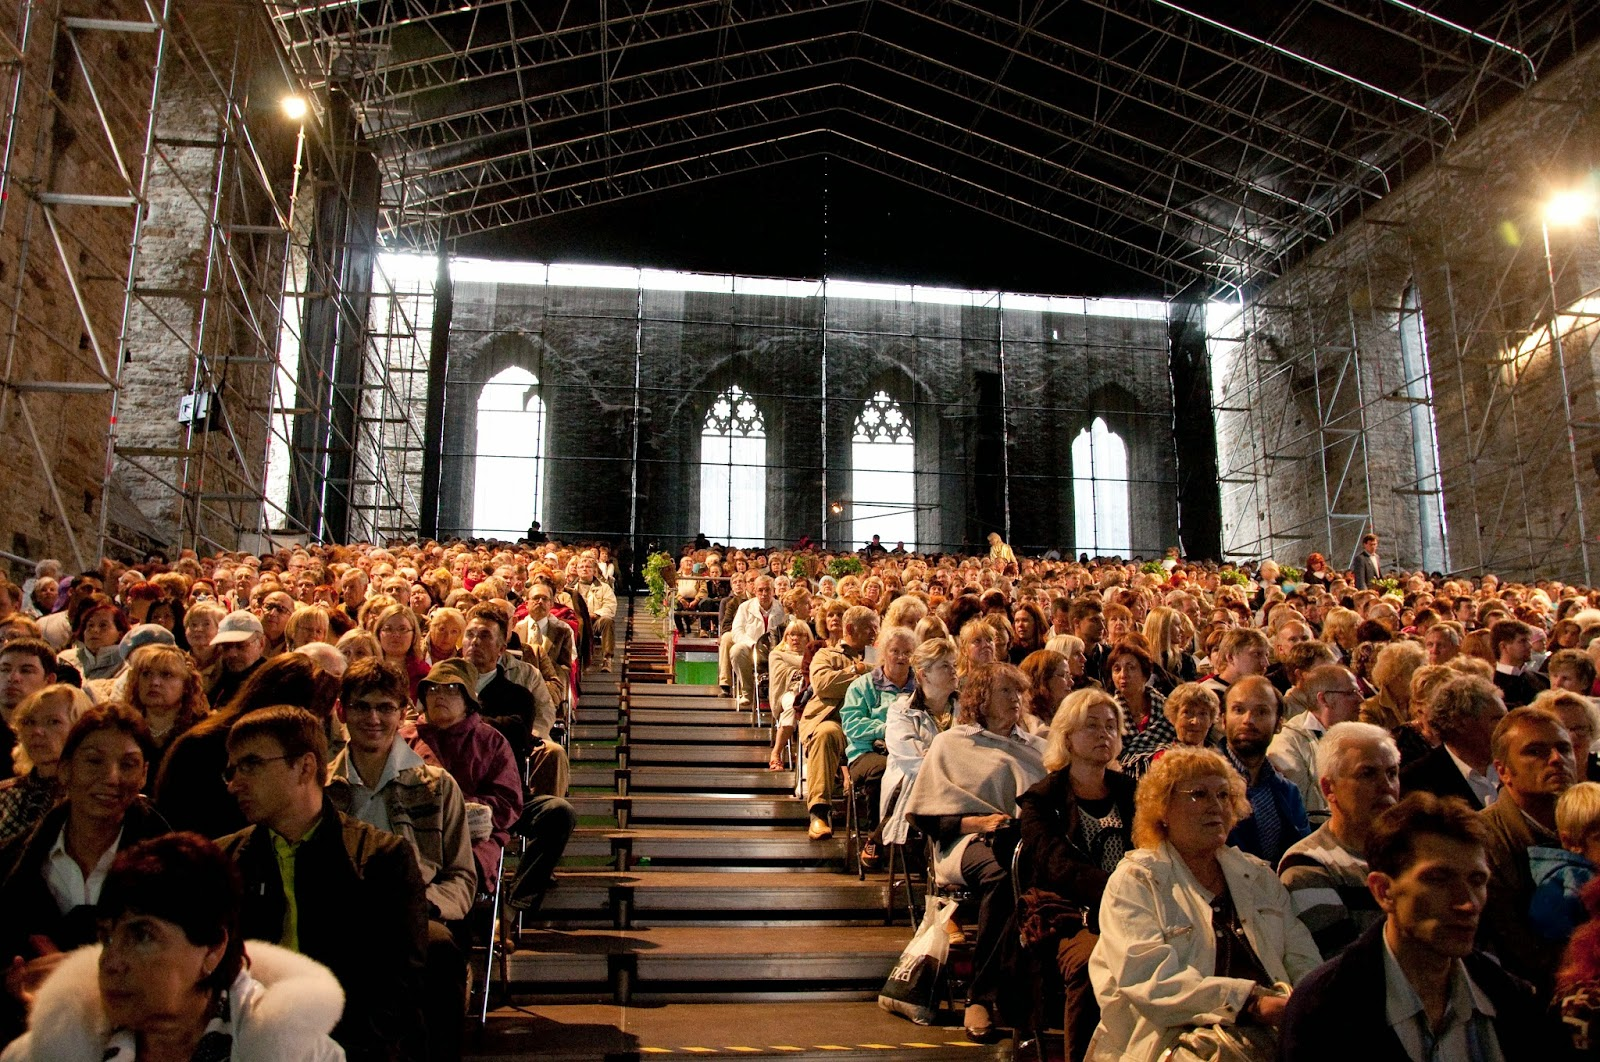 The Audience at the Birgitta Festival in Tallinn